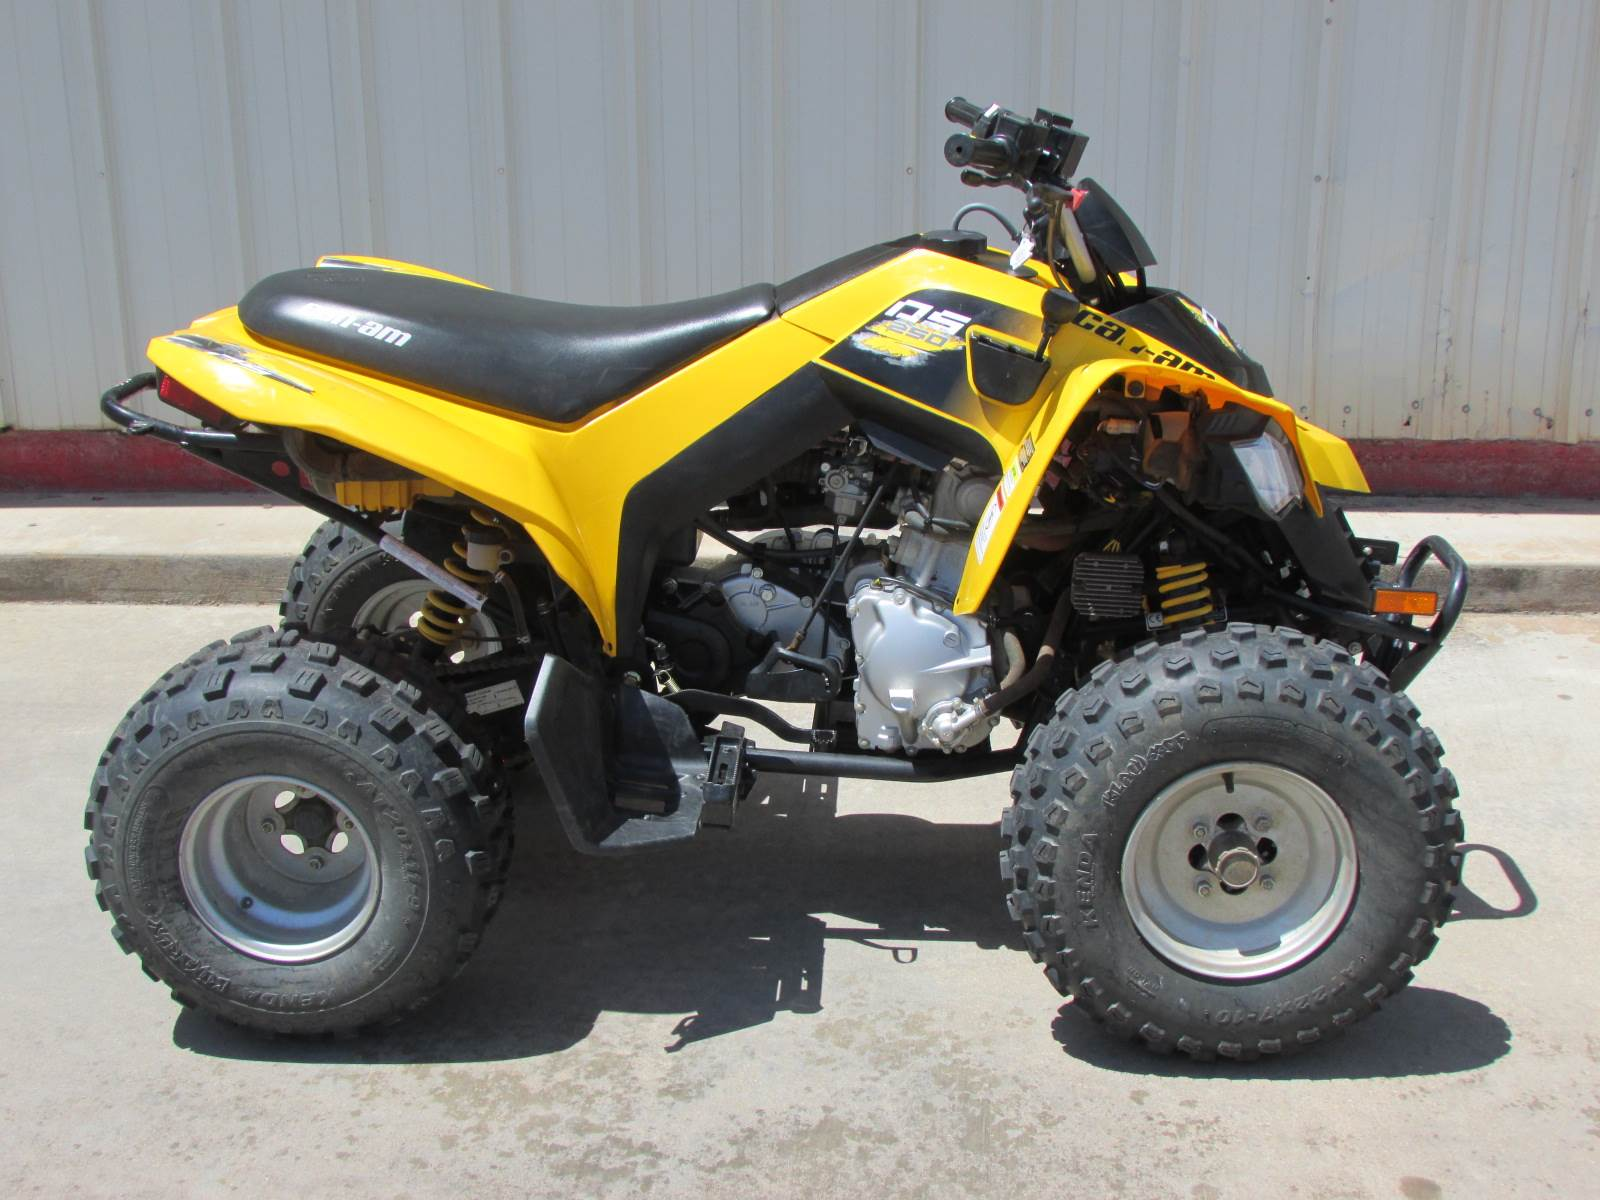 2015 Can-Am DS 250 for sale 157634